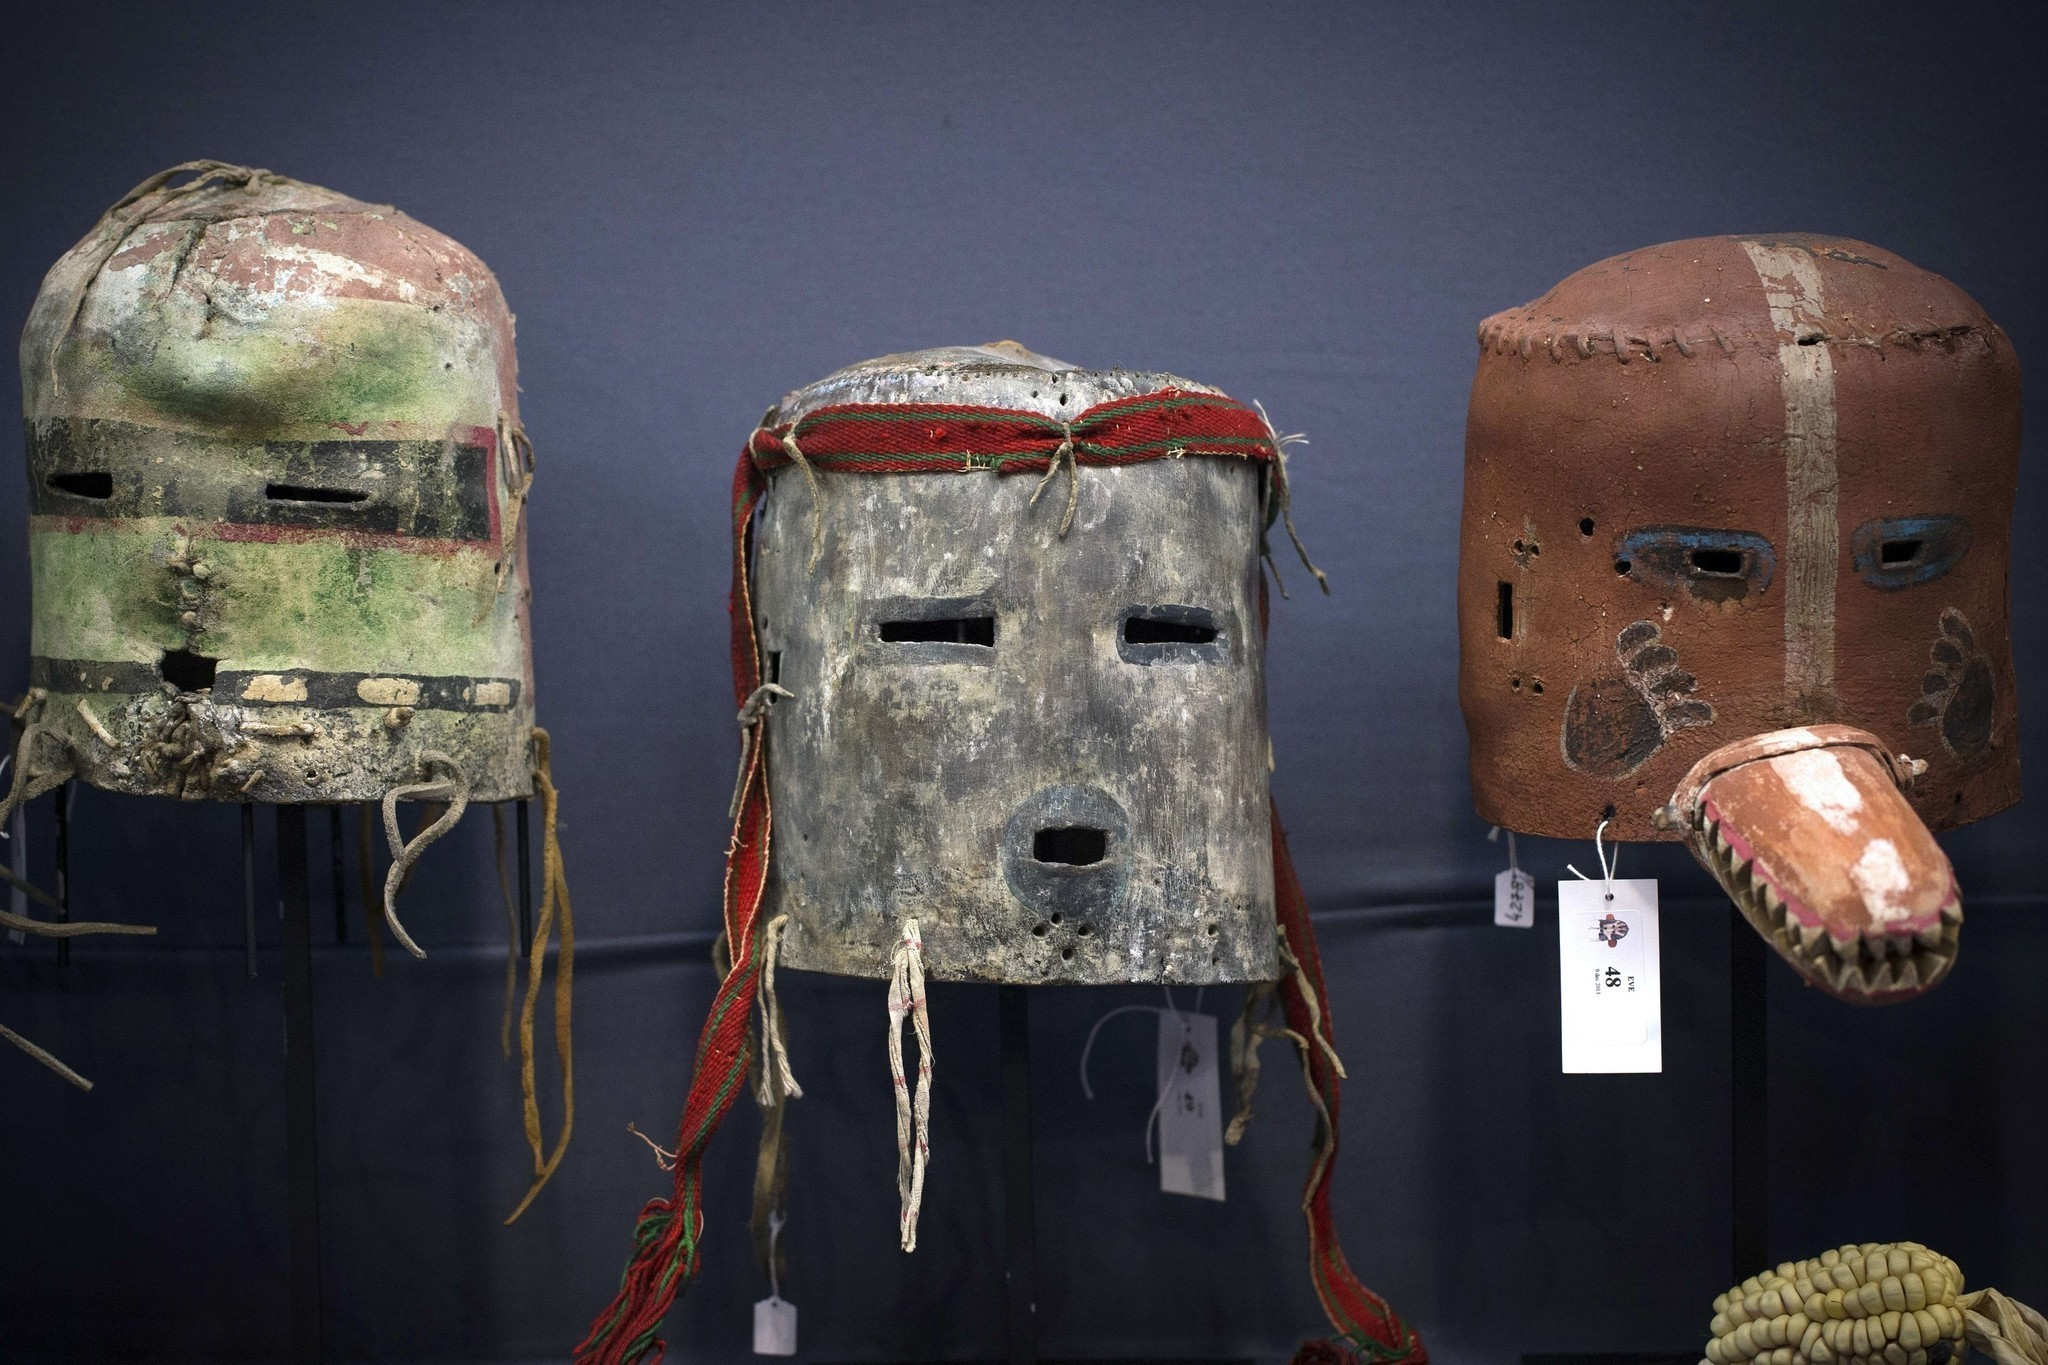 A bid to restore spiritual artifacts to Hopi and Apache tribes